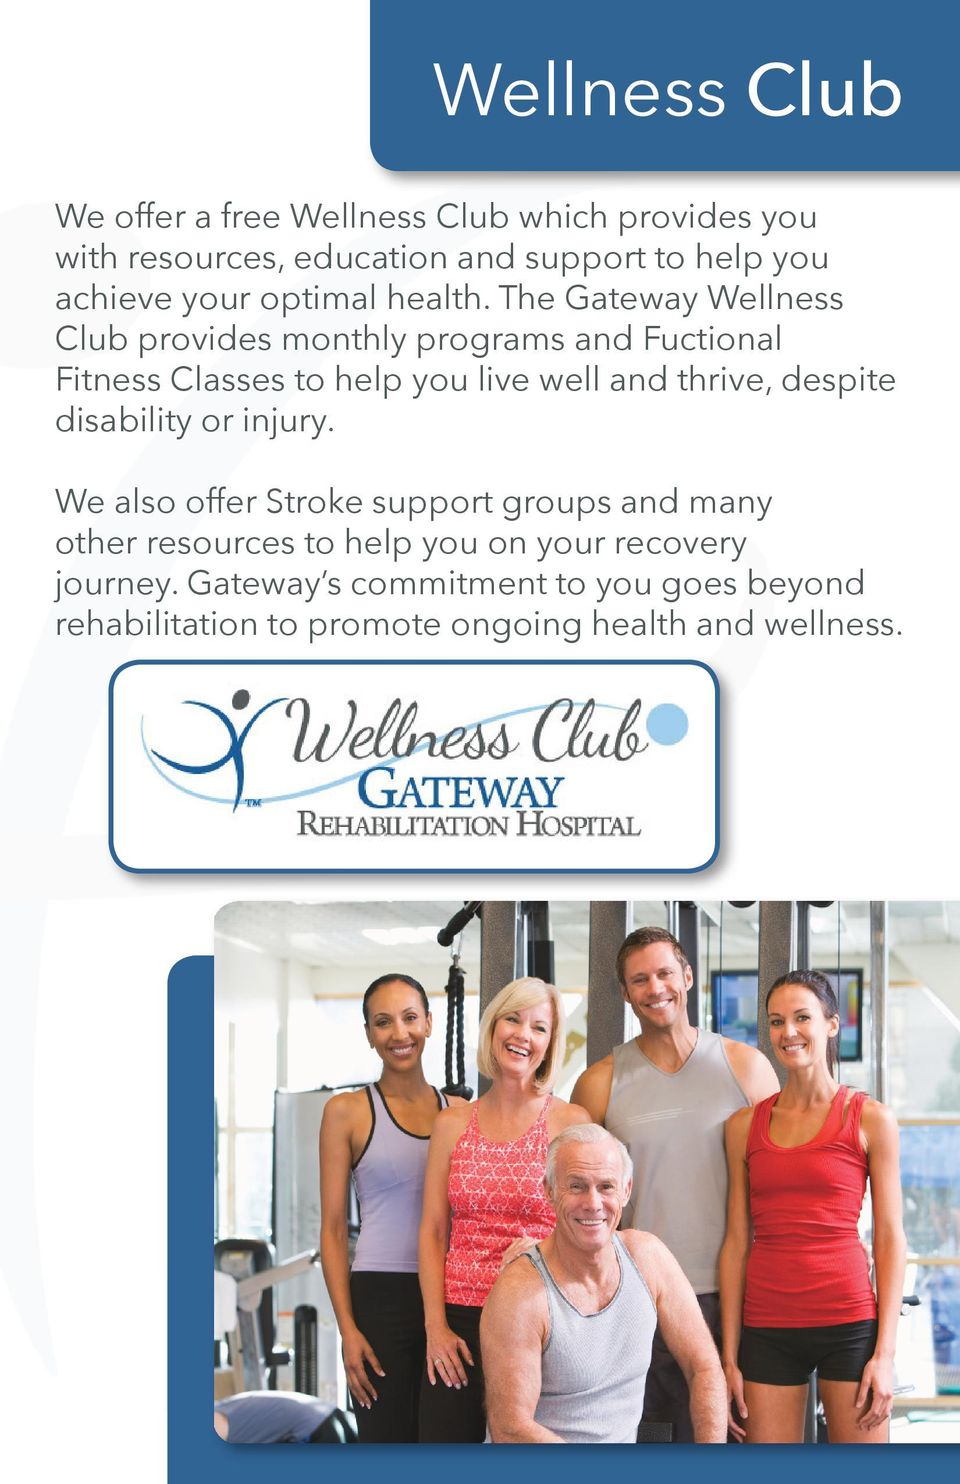 The Gateway Wellness Club provides monthly programs and Fuctional Fitness Classes to help you live well and thrive,